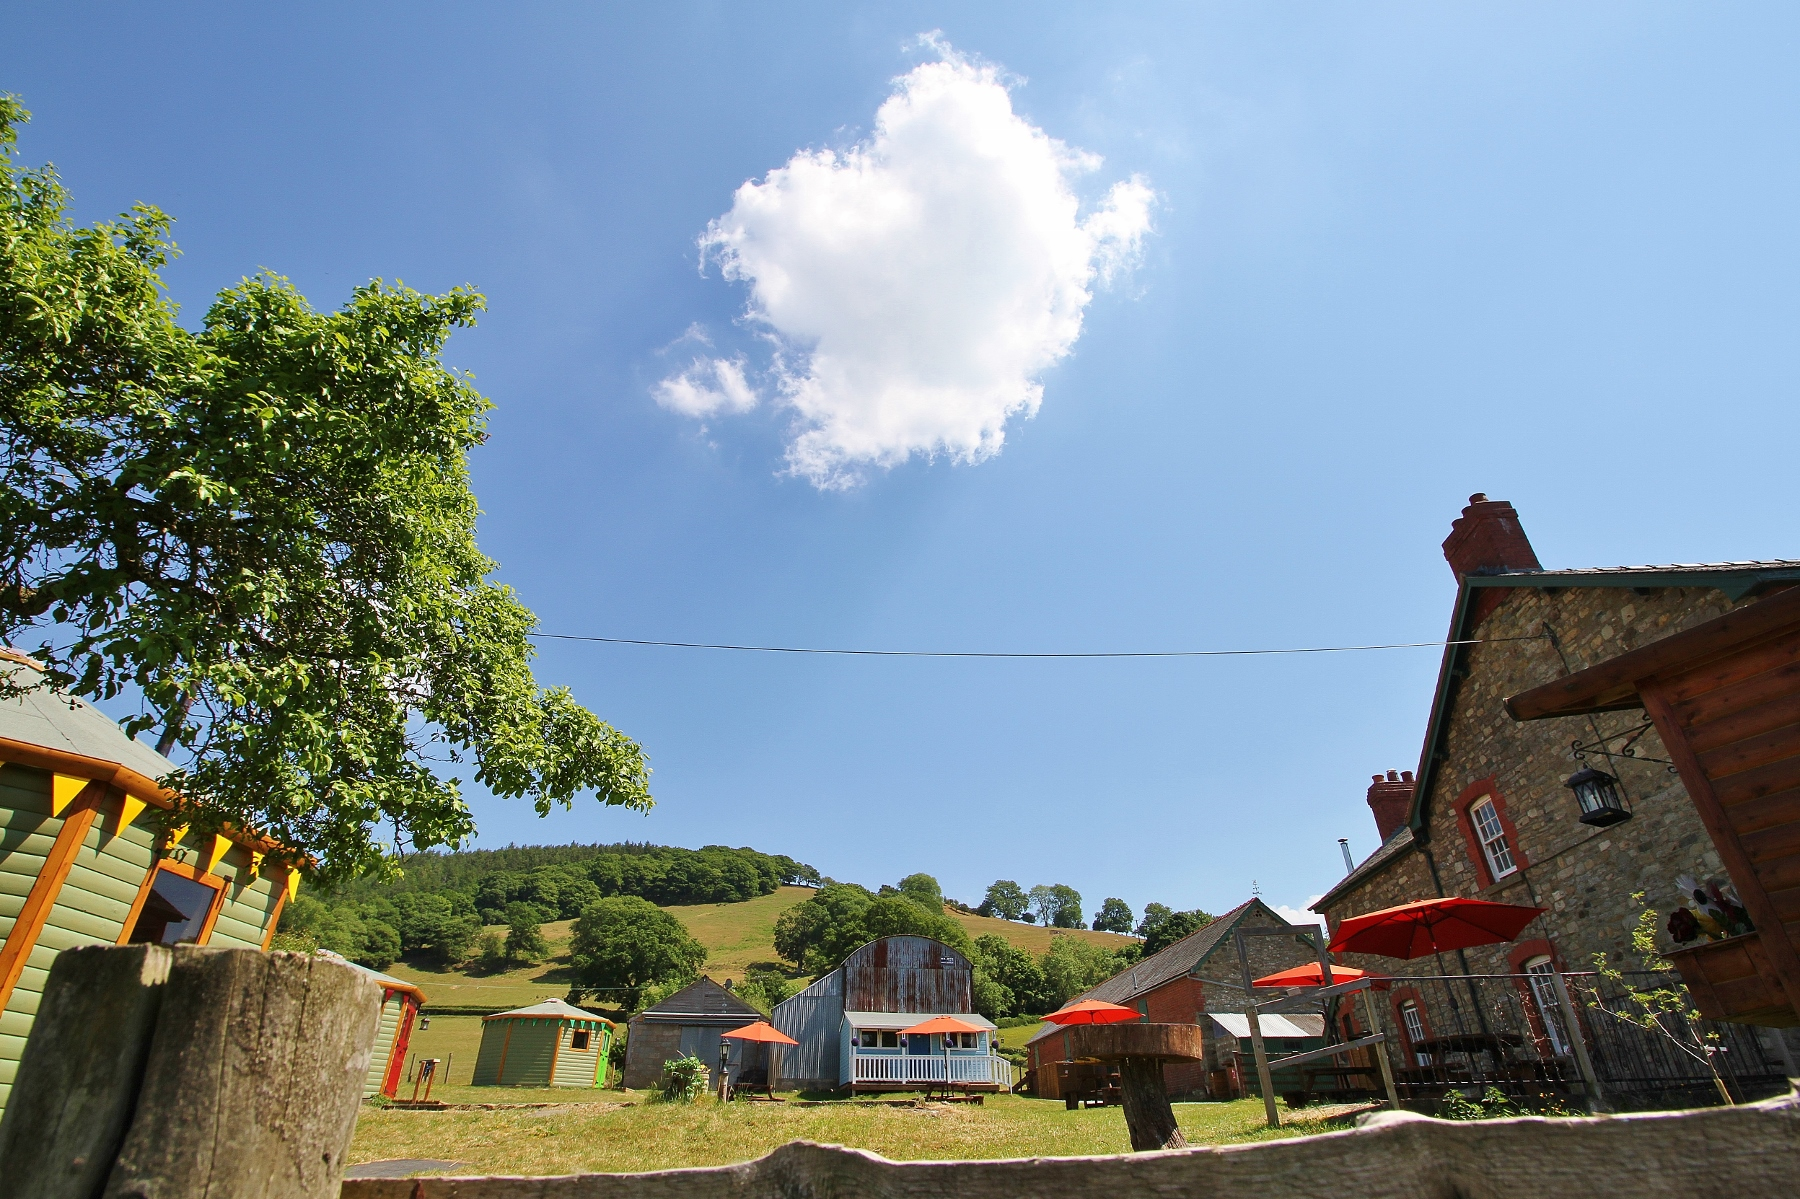 Summer glamping at Barnutopia